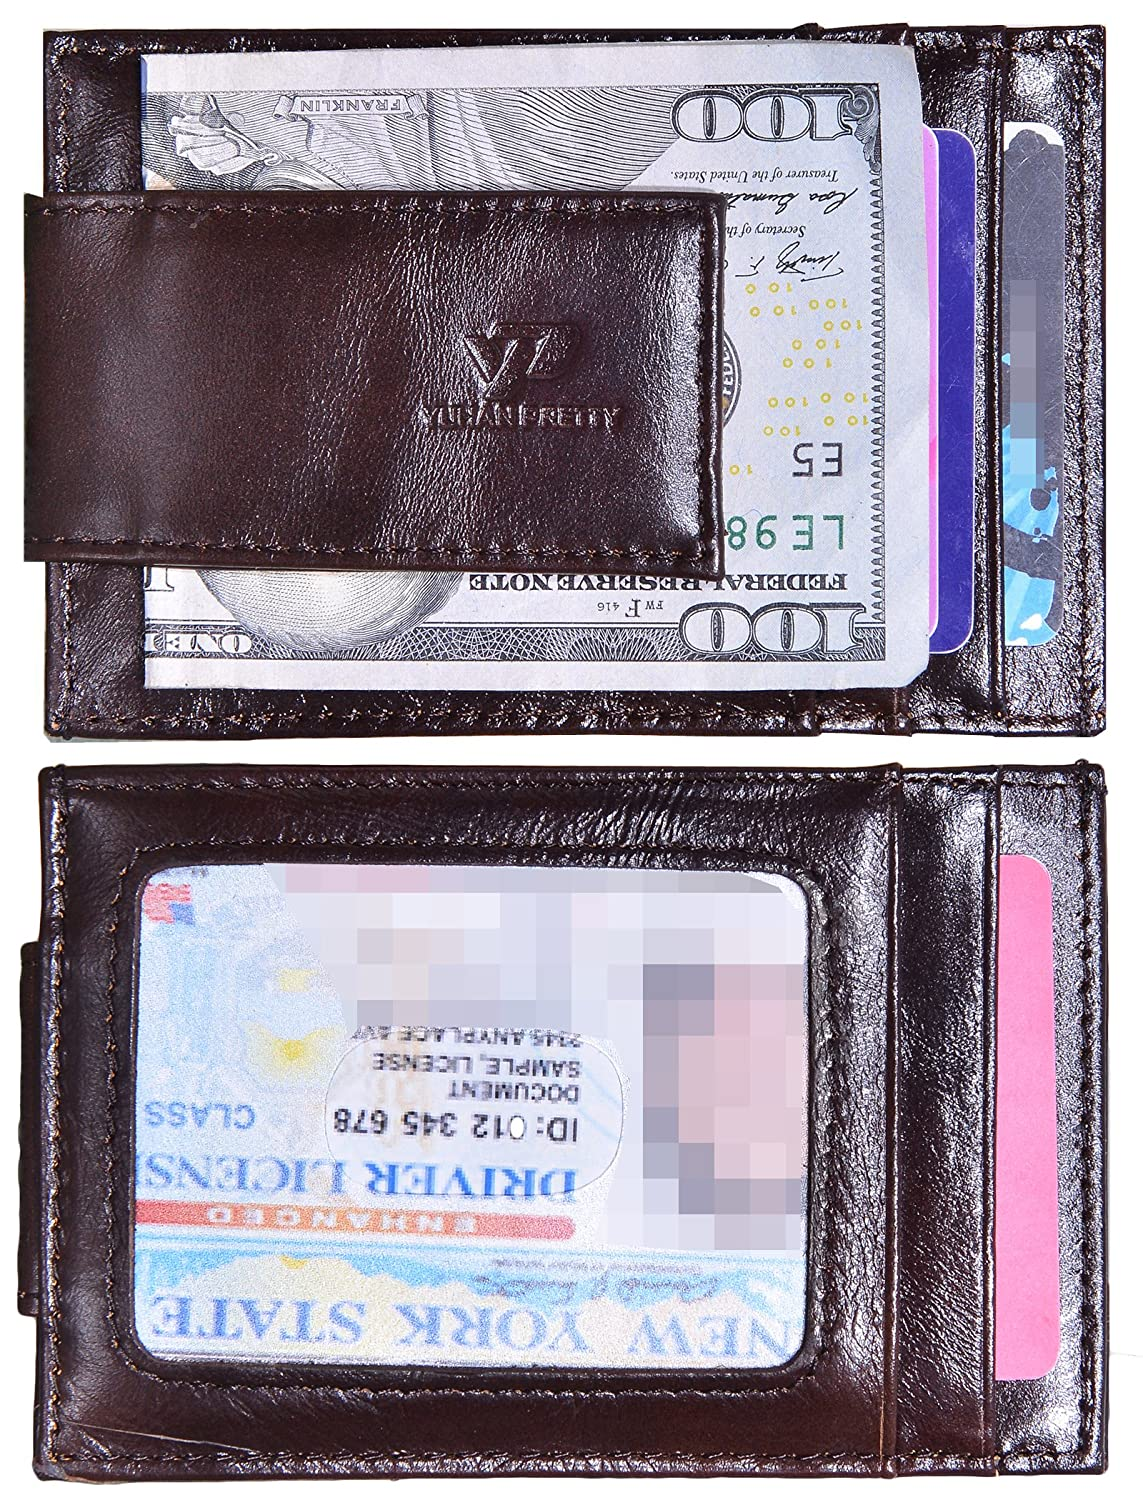 Mens Money Clip Wallet RFID Slim Wallet Genuine Leather Thin Front Pocket Wallet (Small Coffee With Id Window (Oil Leather)) MC0922002YPC2